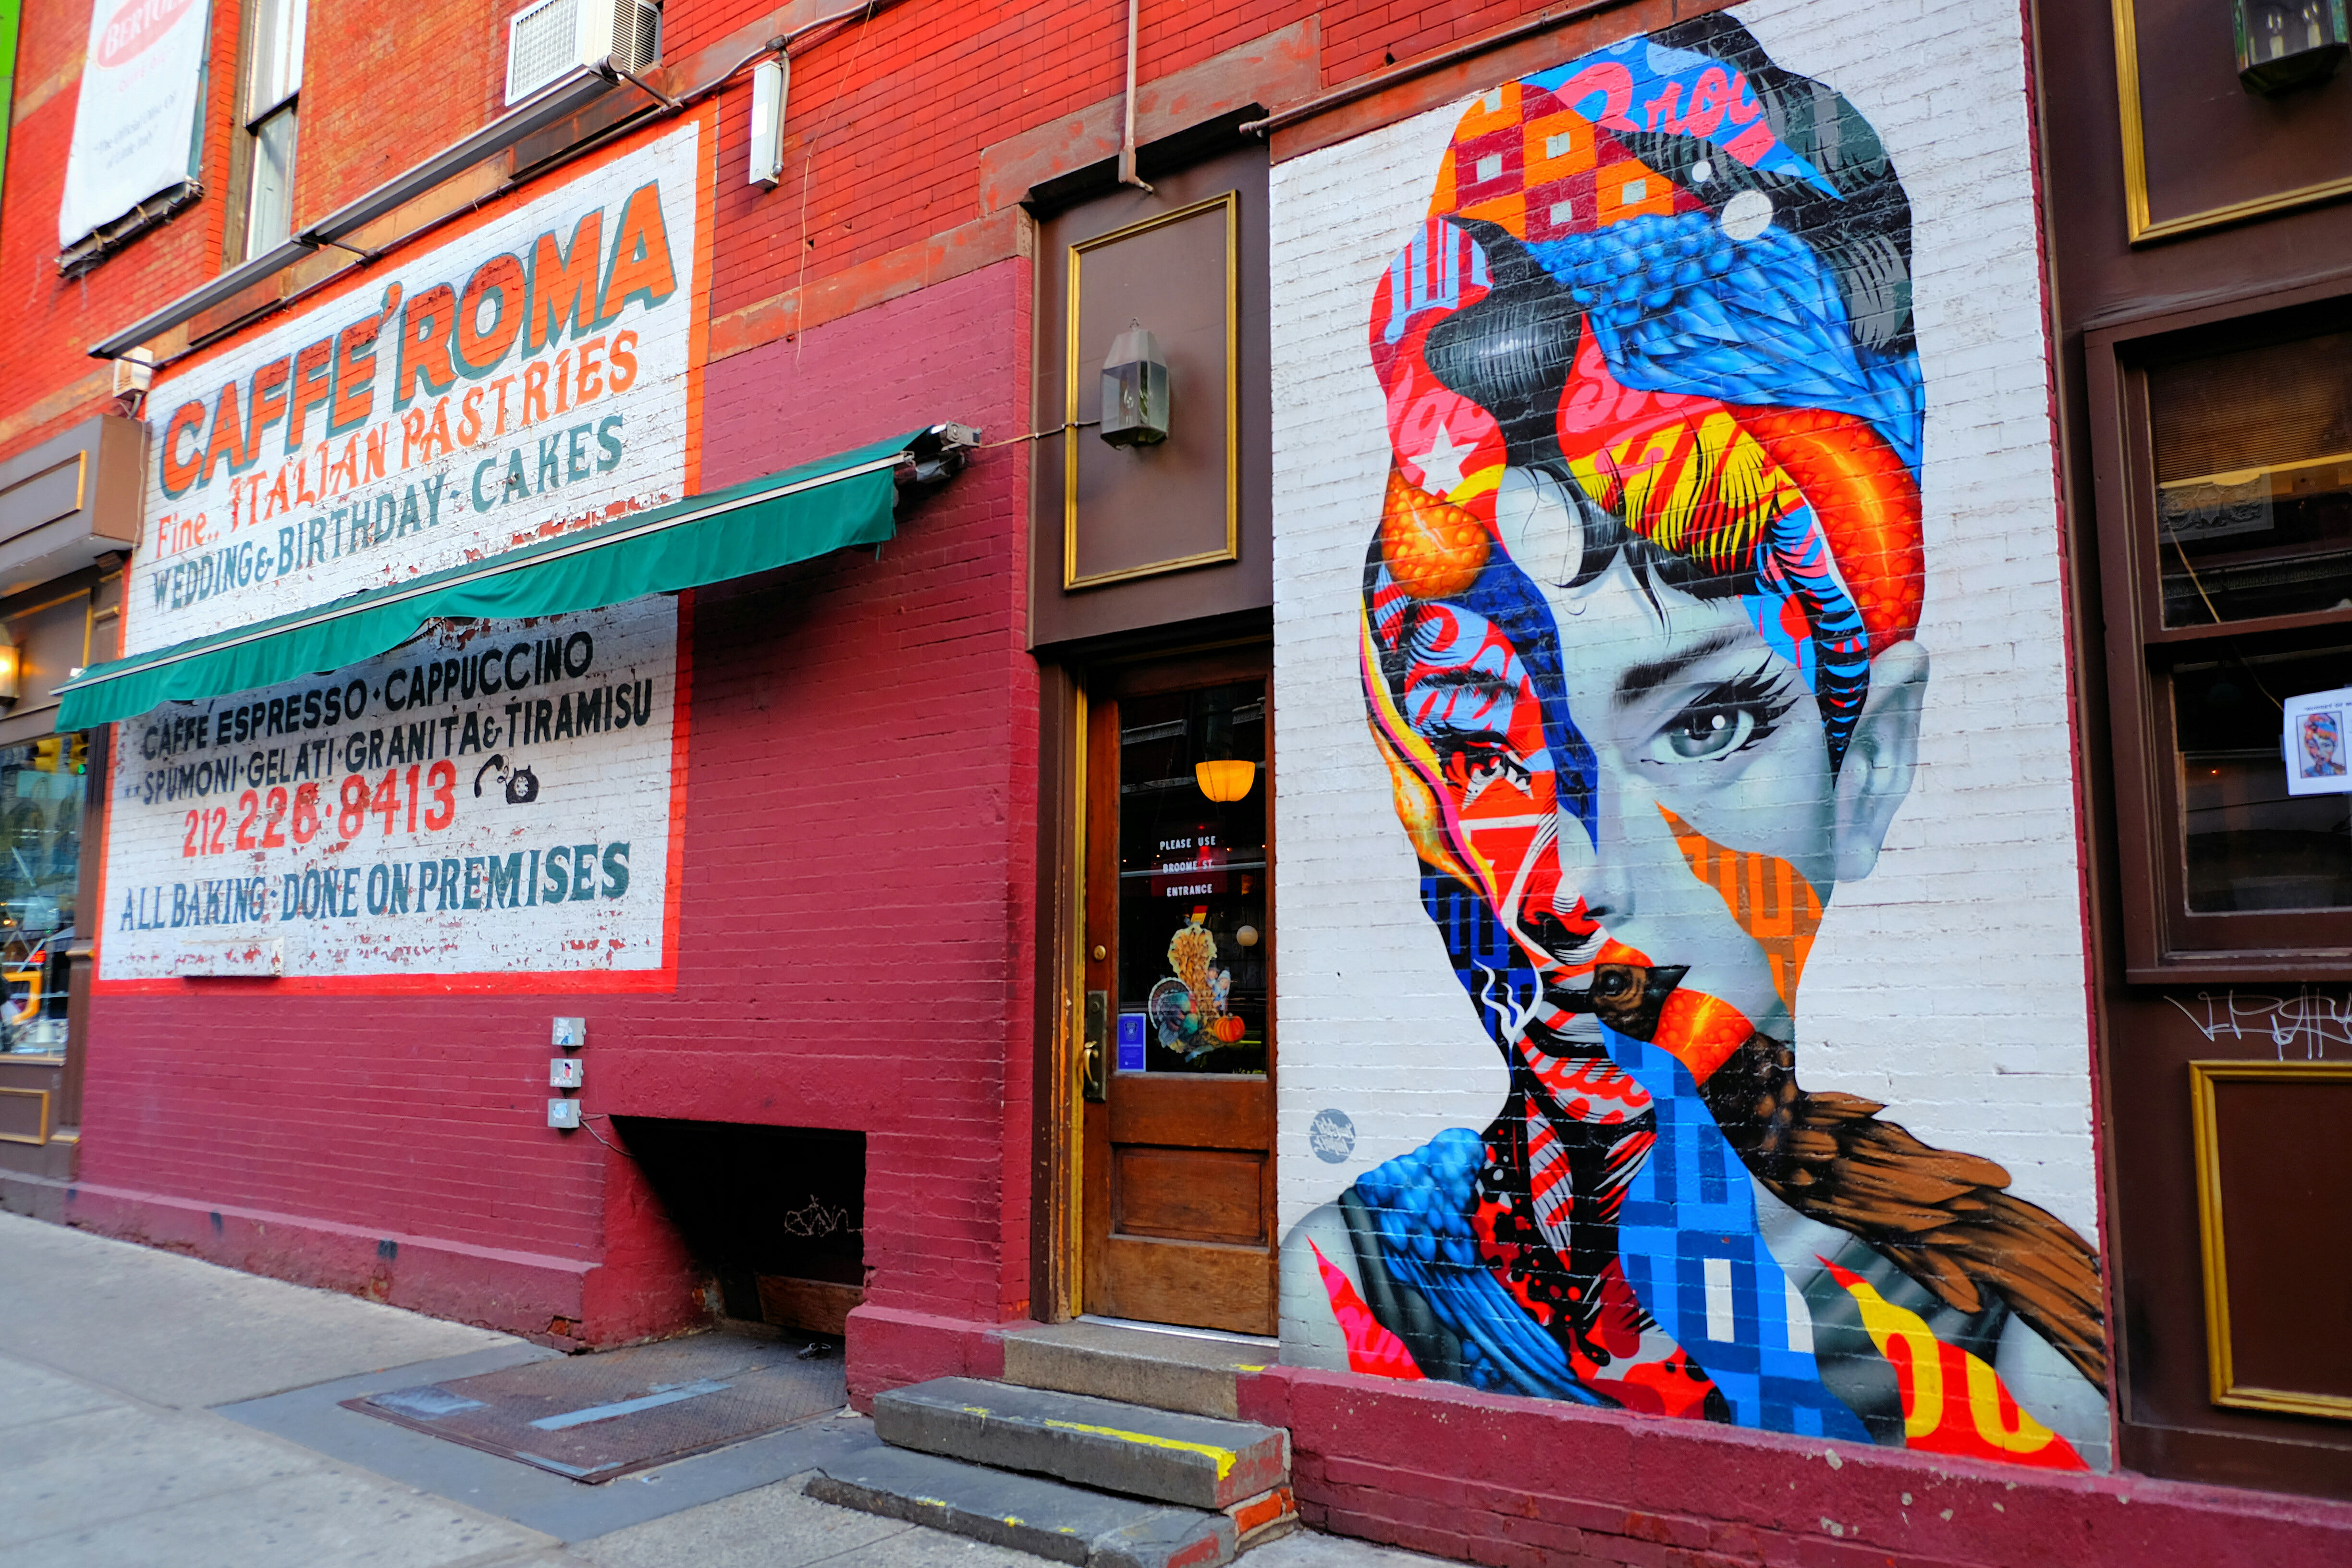 Audrey Hepburn by Tristan Eaton Street Art in New York – High Quality Wallpaper